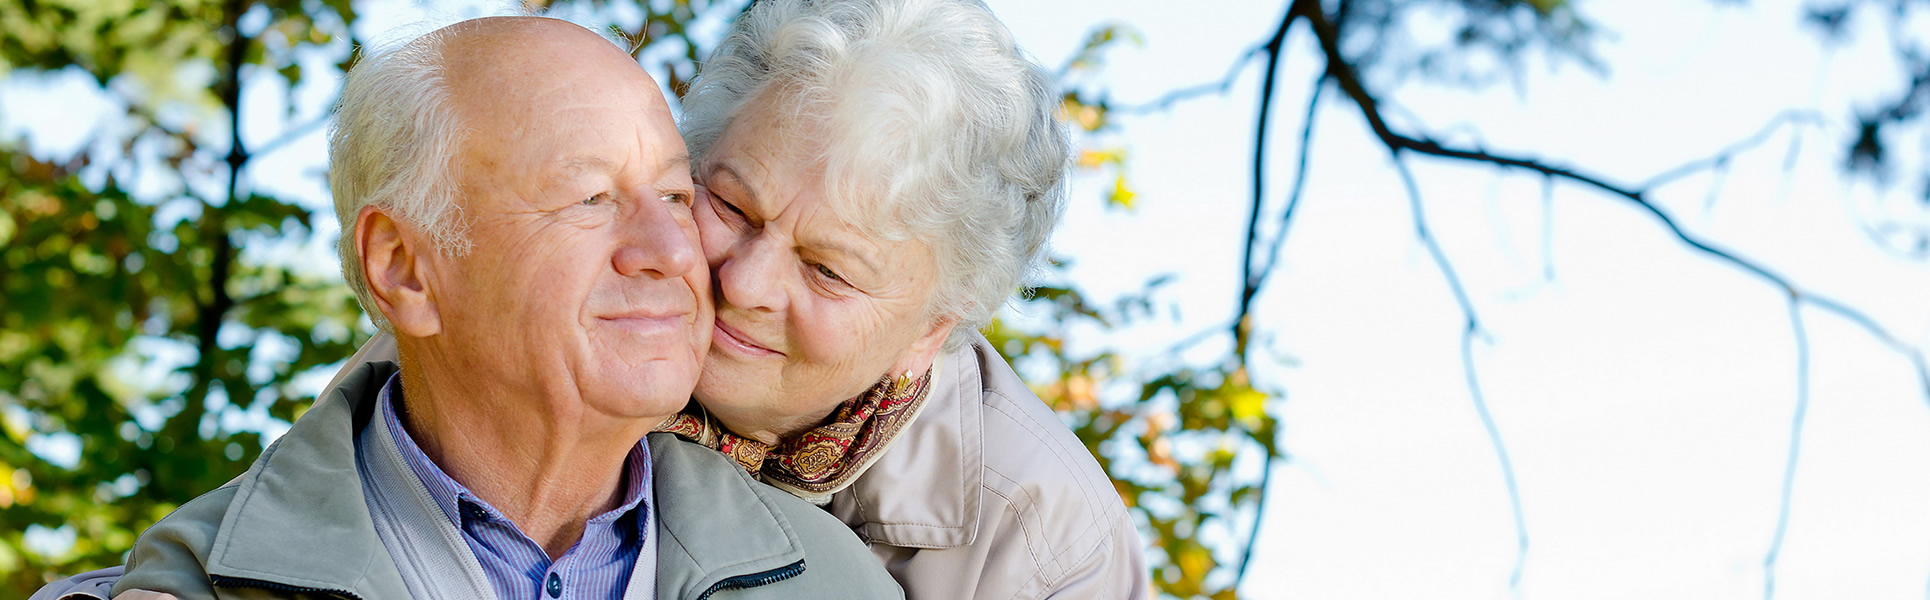 Most Trusted Seniors Online Dating Service In Florida